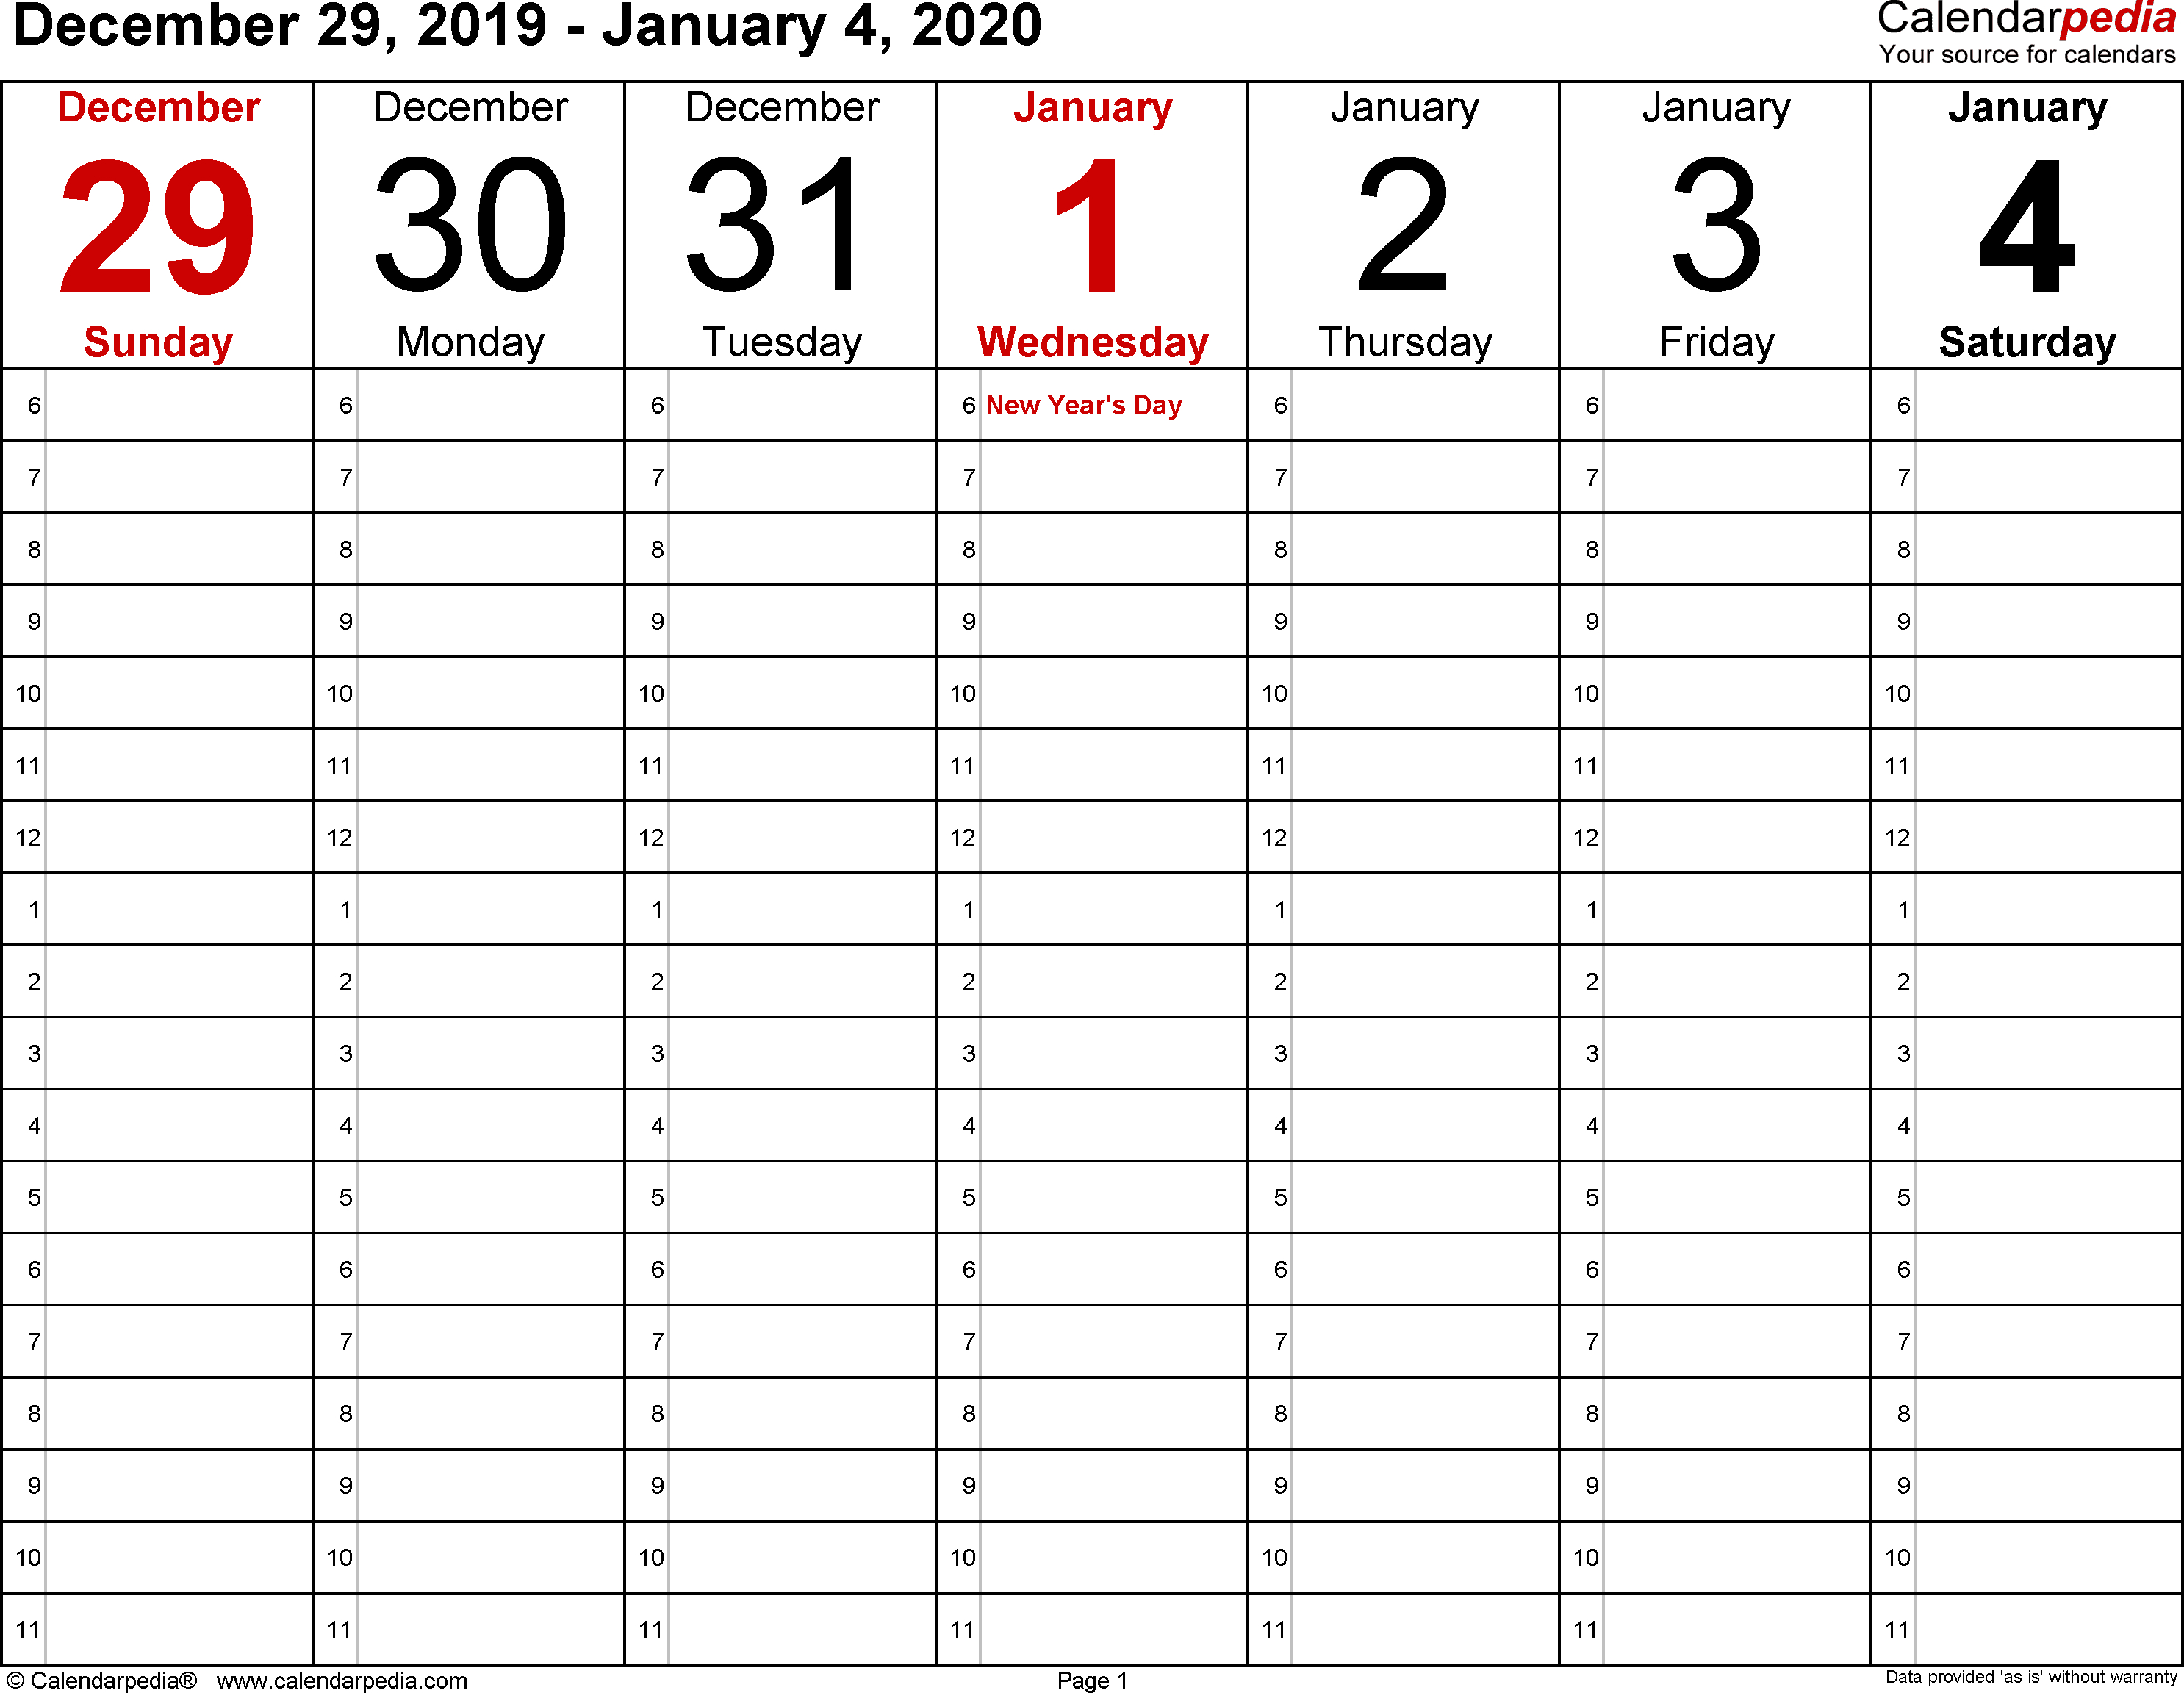 Weekly Calendar 2020 For Excel - 12 Free Printable Templates